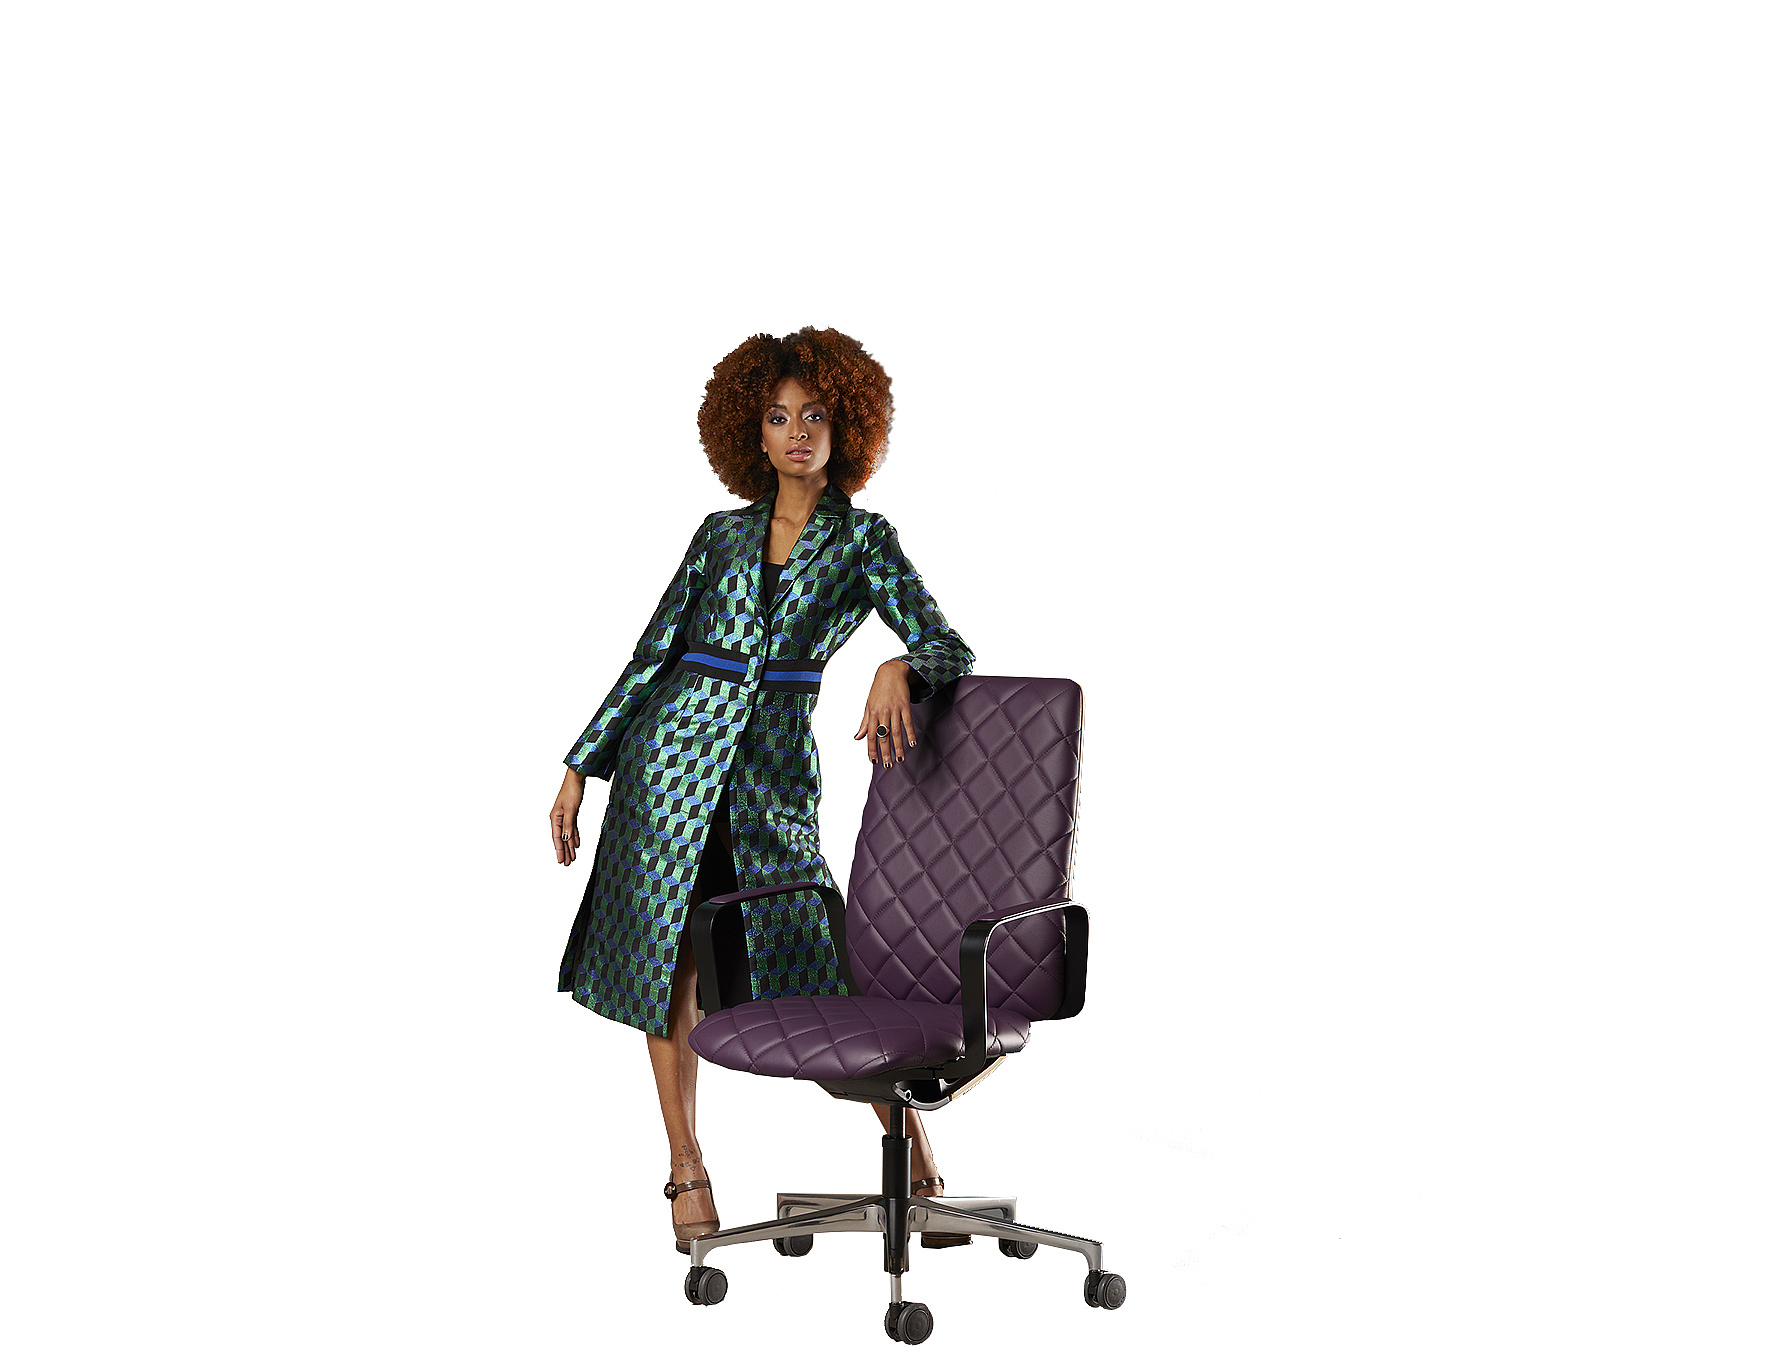 Outstanding Specialist For Ergonomic Design Oriented Office Furniture Forskolin Free Trial Chair Design Images Forskolin Free Trialorg